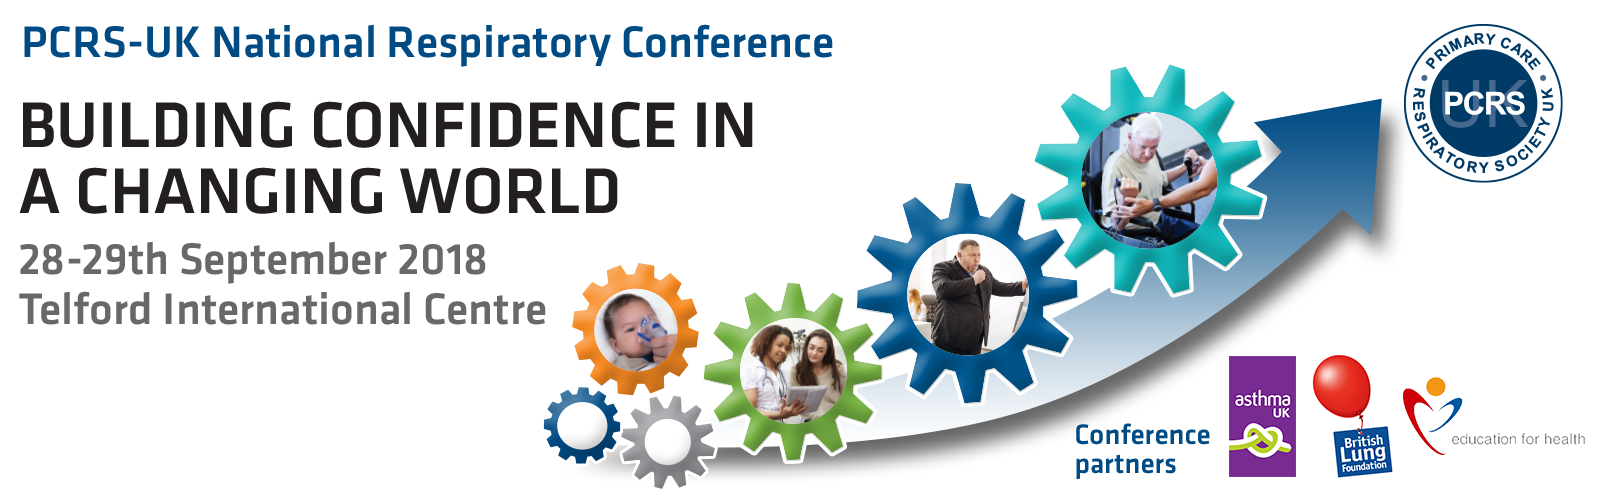 PCRS-UK annual conference